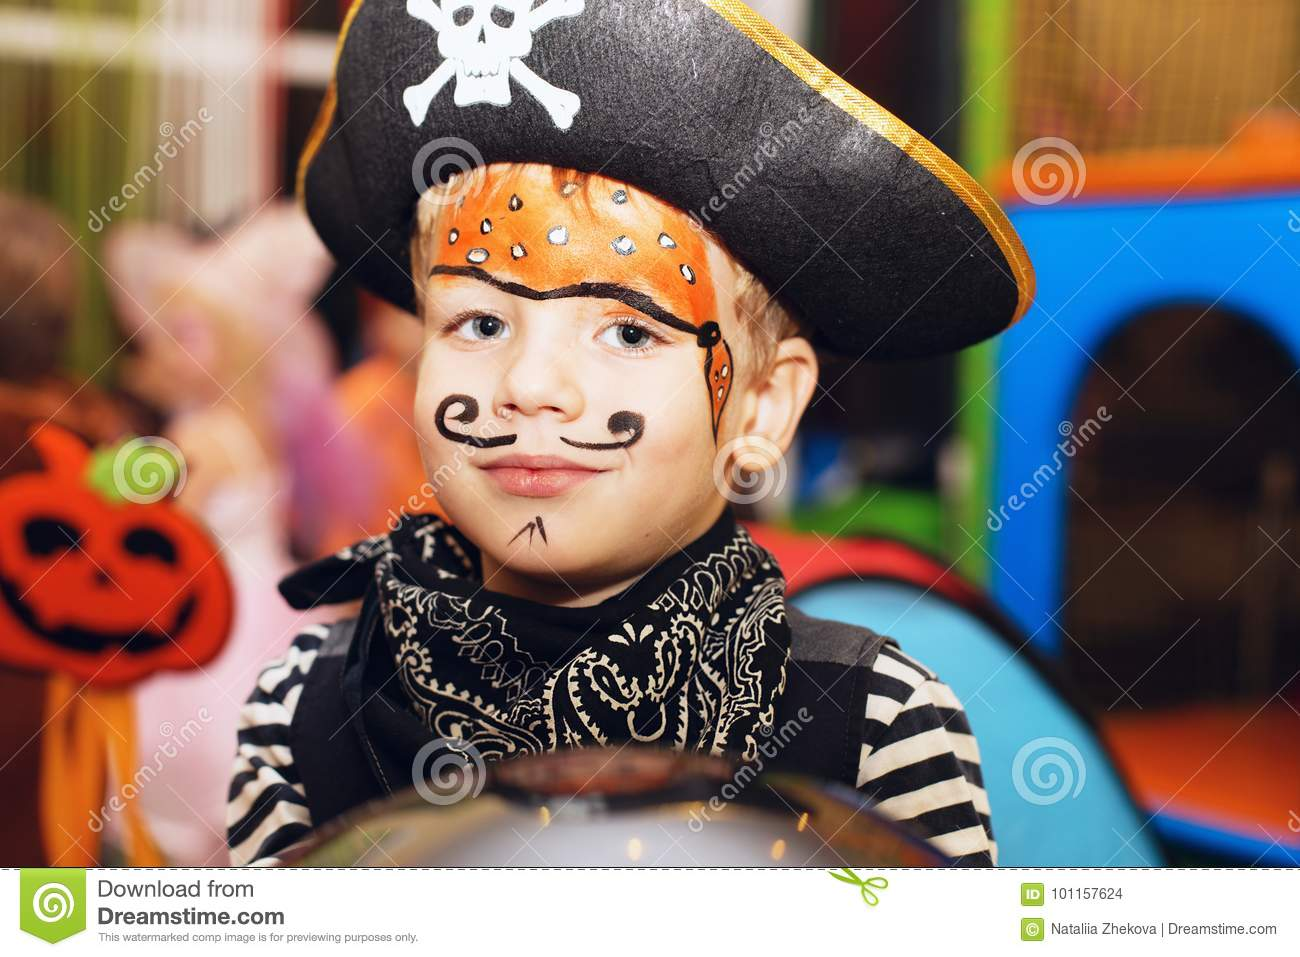 Halloween Makeup For Kids Boy.Little Boy In A Pirate Costume And A Makeup On His Face Is